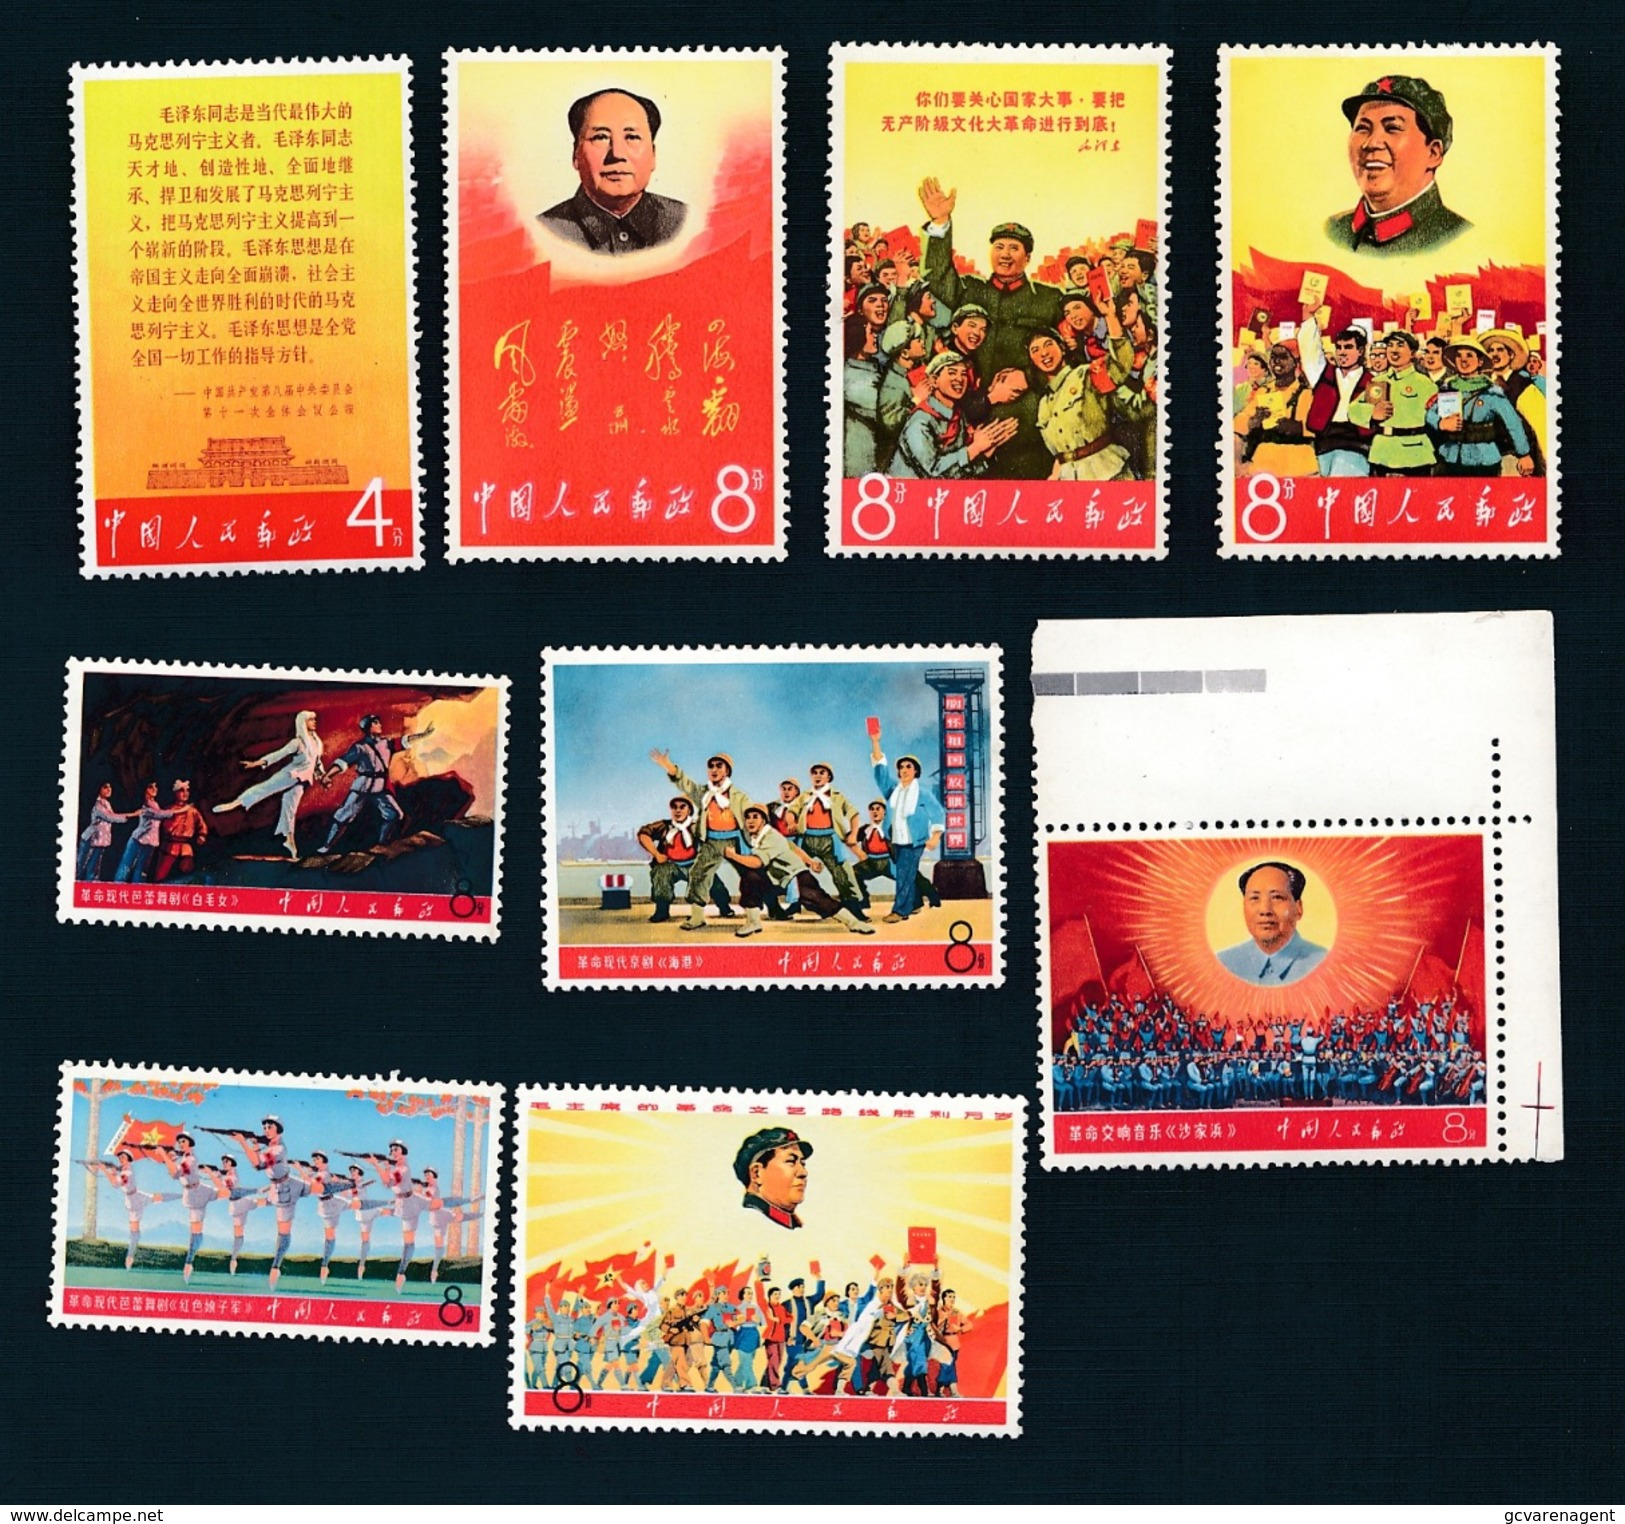 CHINE 9 STAMPS NEW  - 2 Scans  - NEUF - Nuovi